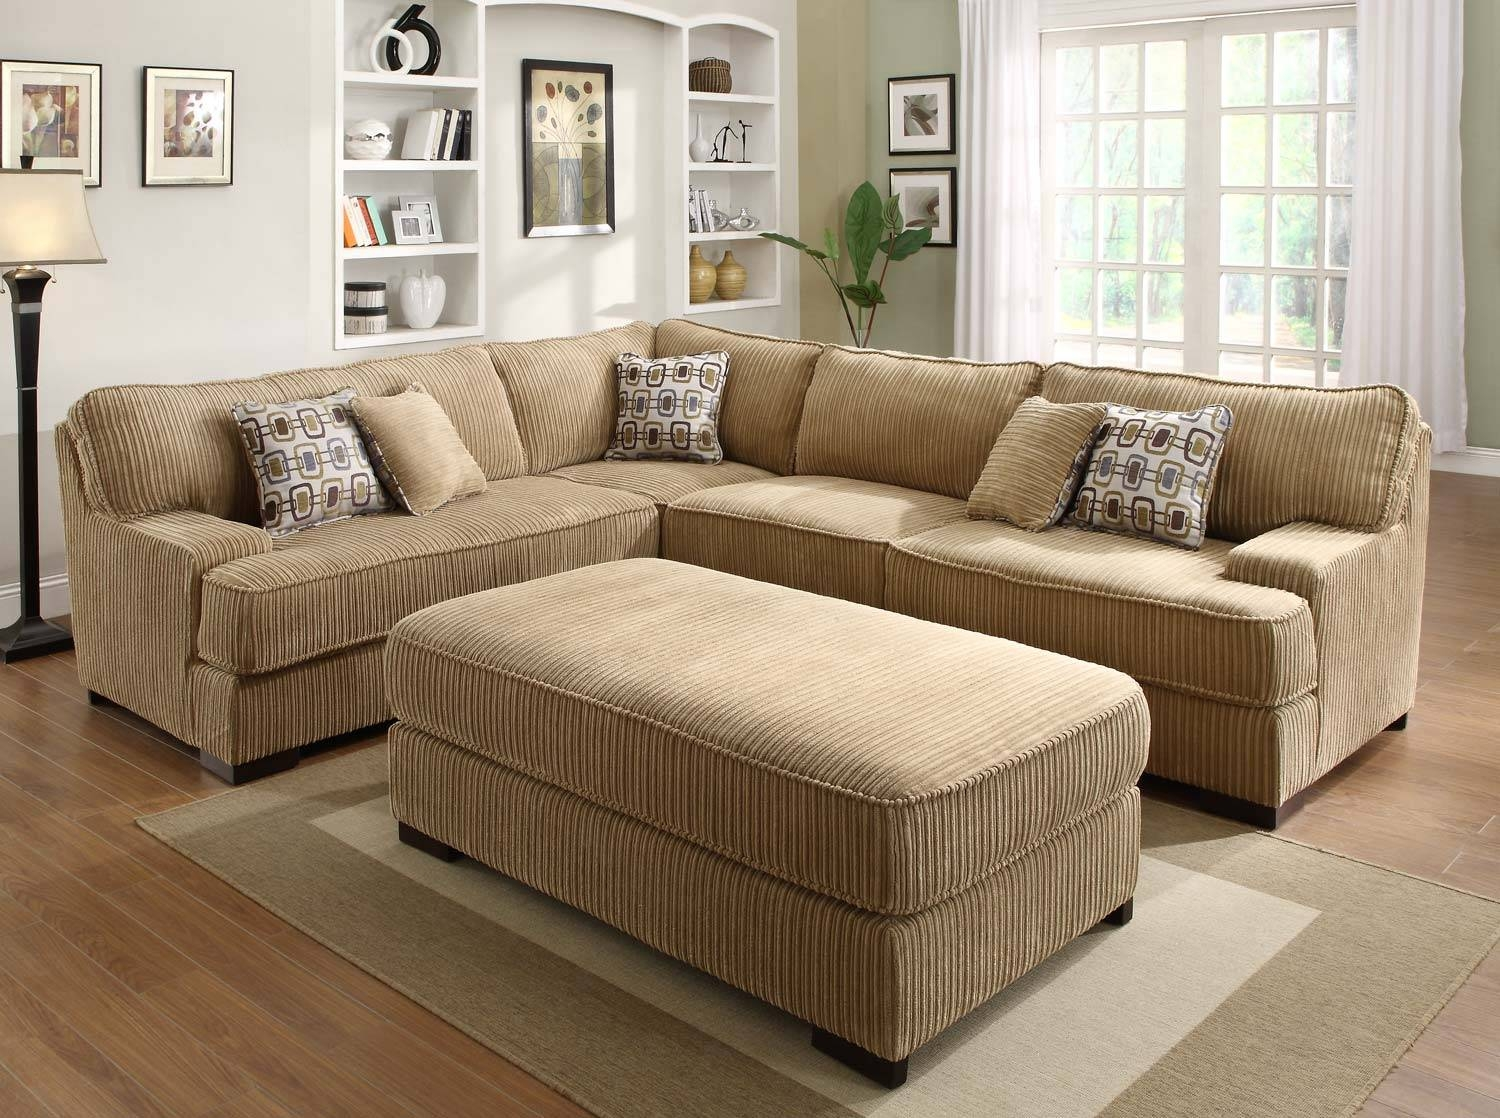 Camel Fabric Sectional Sofa With Dark Brown Faux Leather Base pertaining to Wide Sectional Sofa (Image 7 of 25)